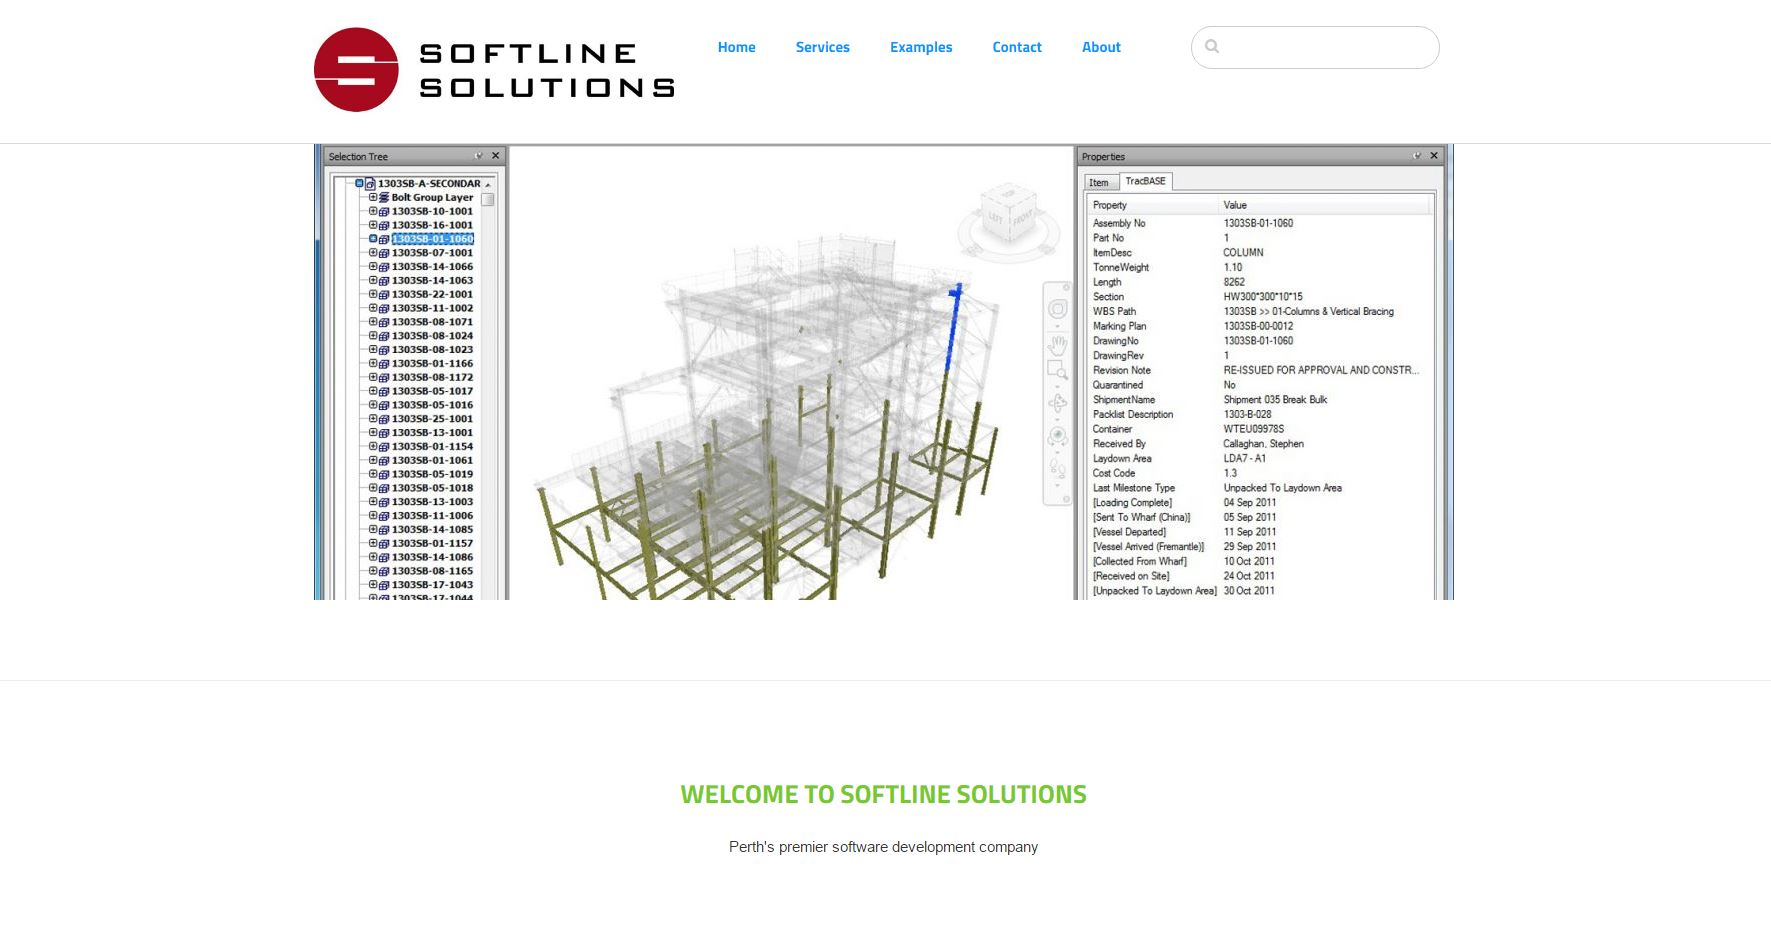 Softline Solutions (defunct)